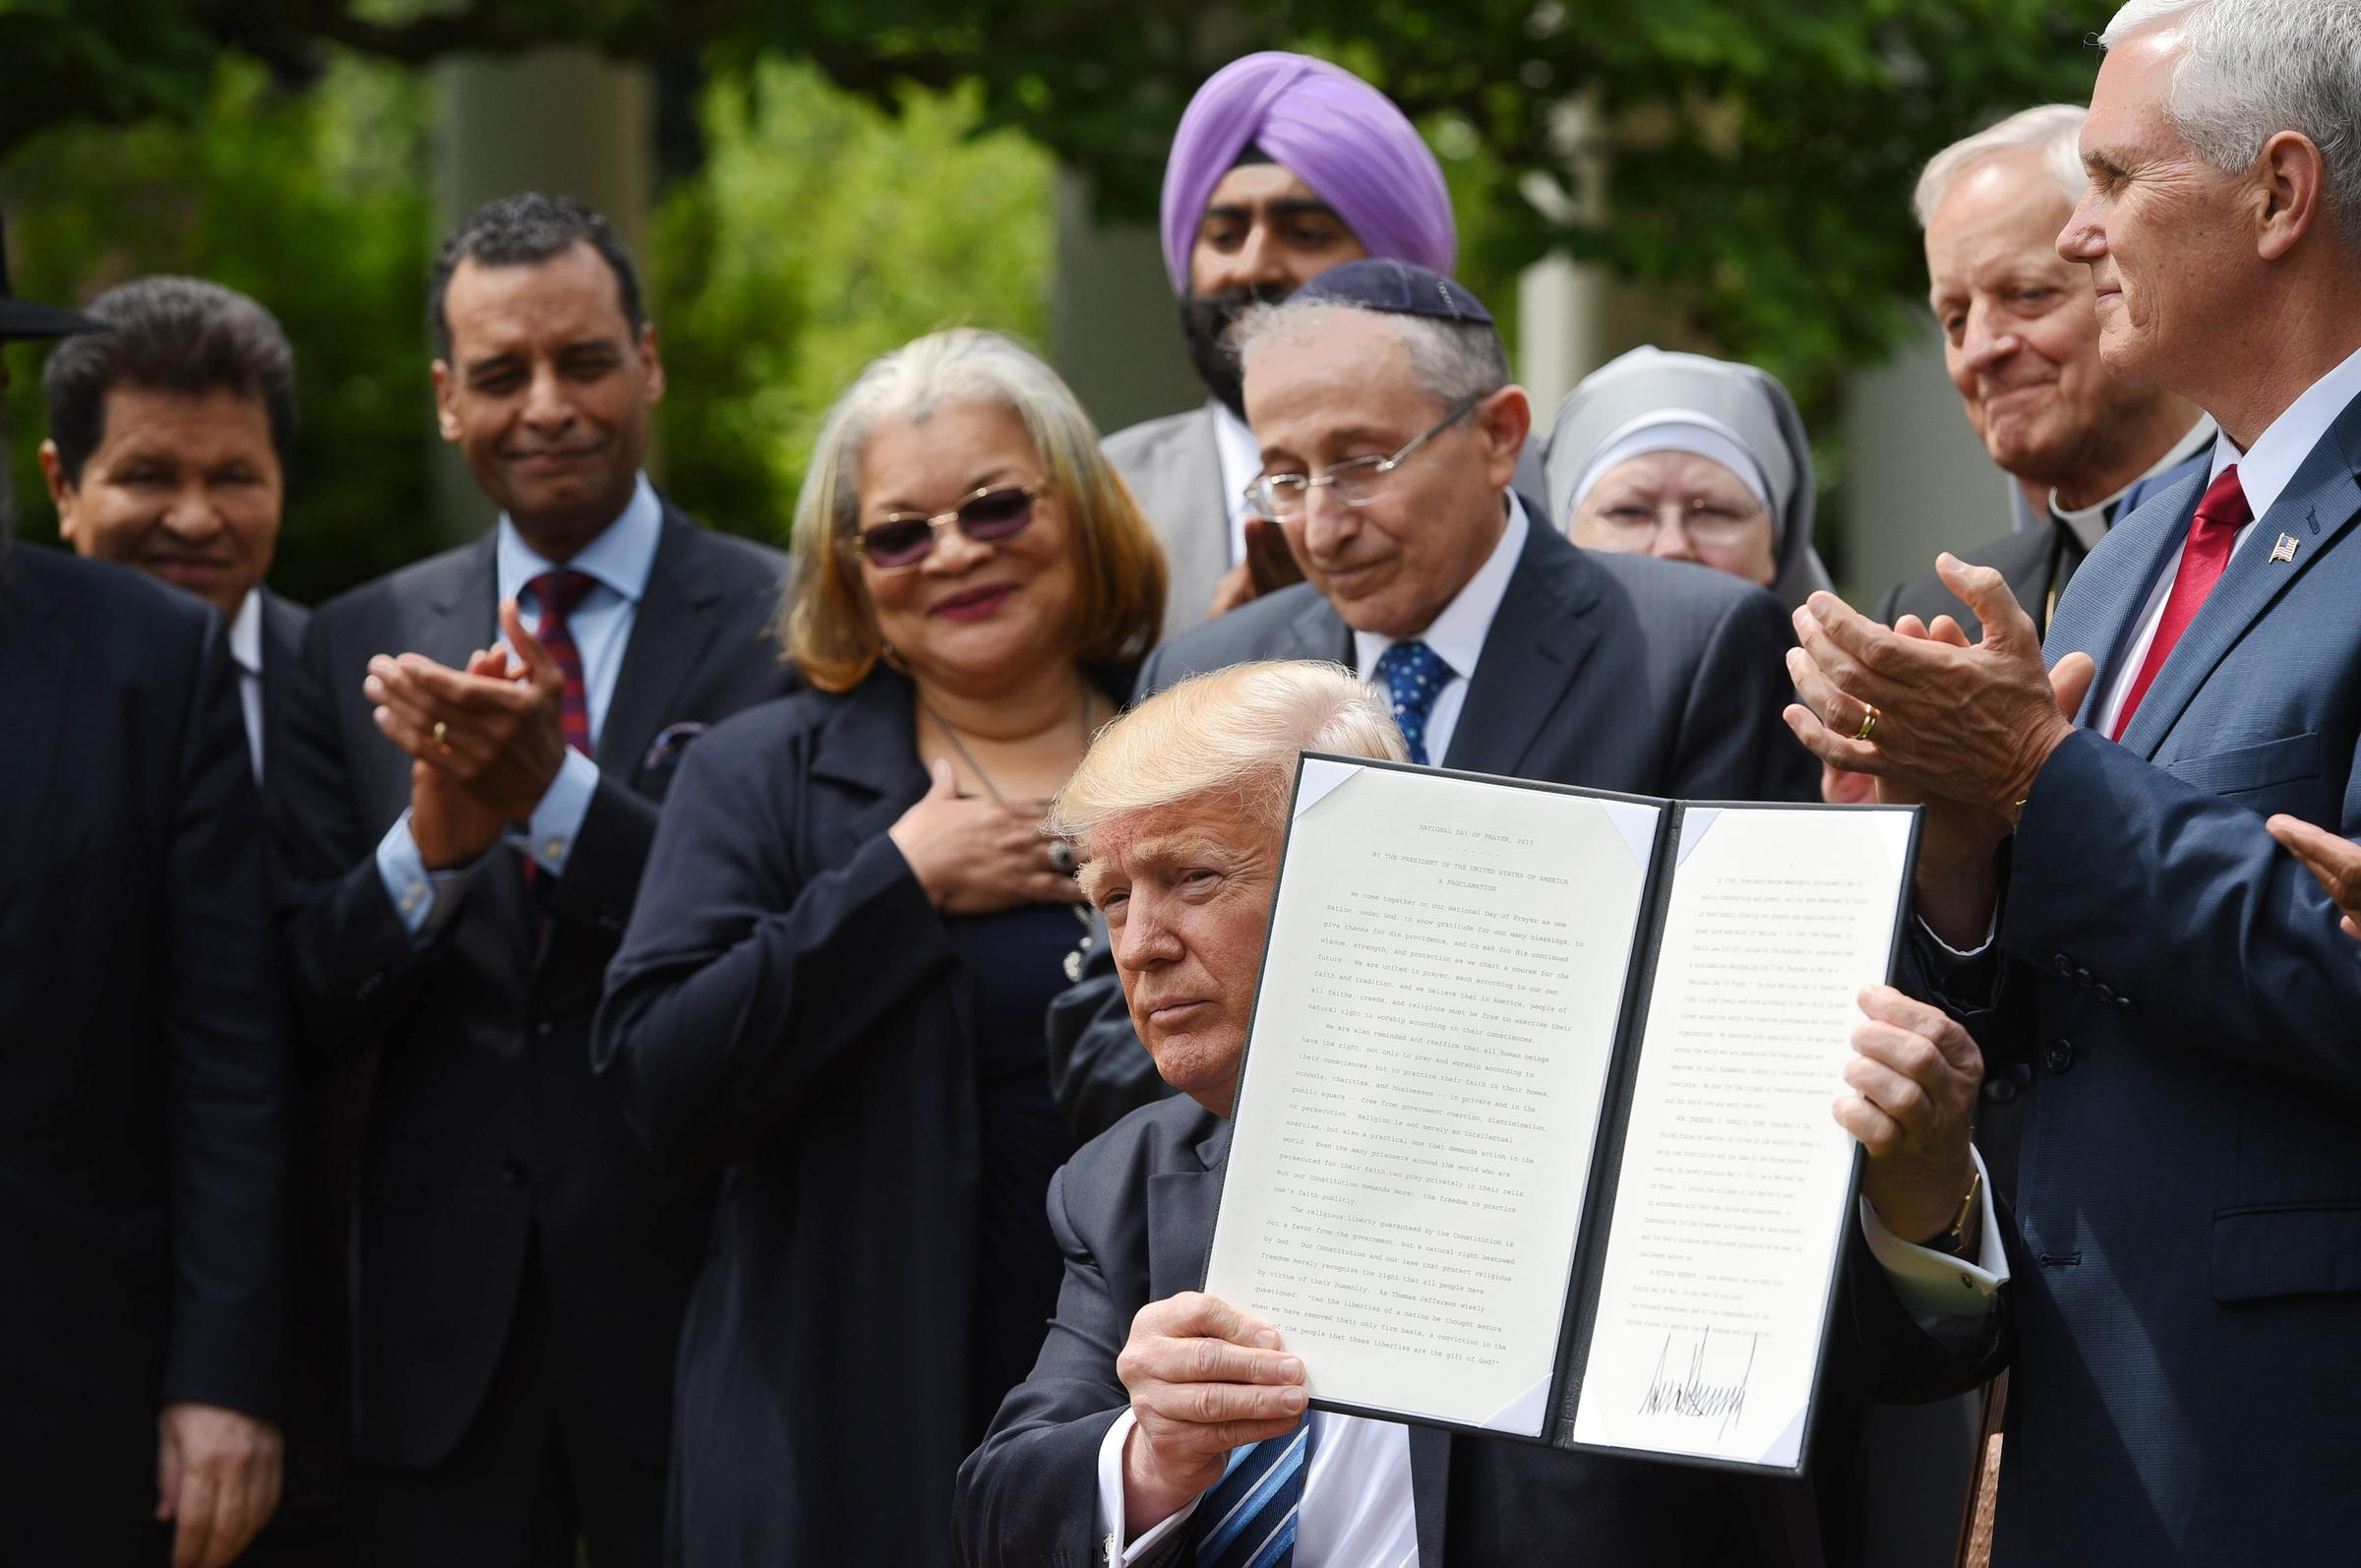 President Trump's Executive Order On Religious Liberty, Annotated